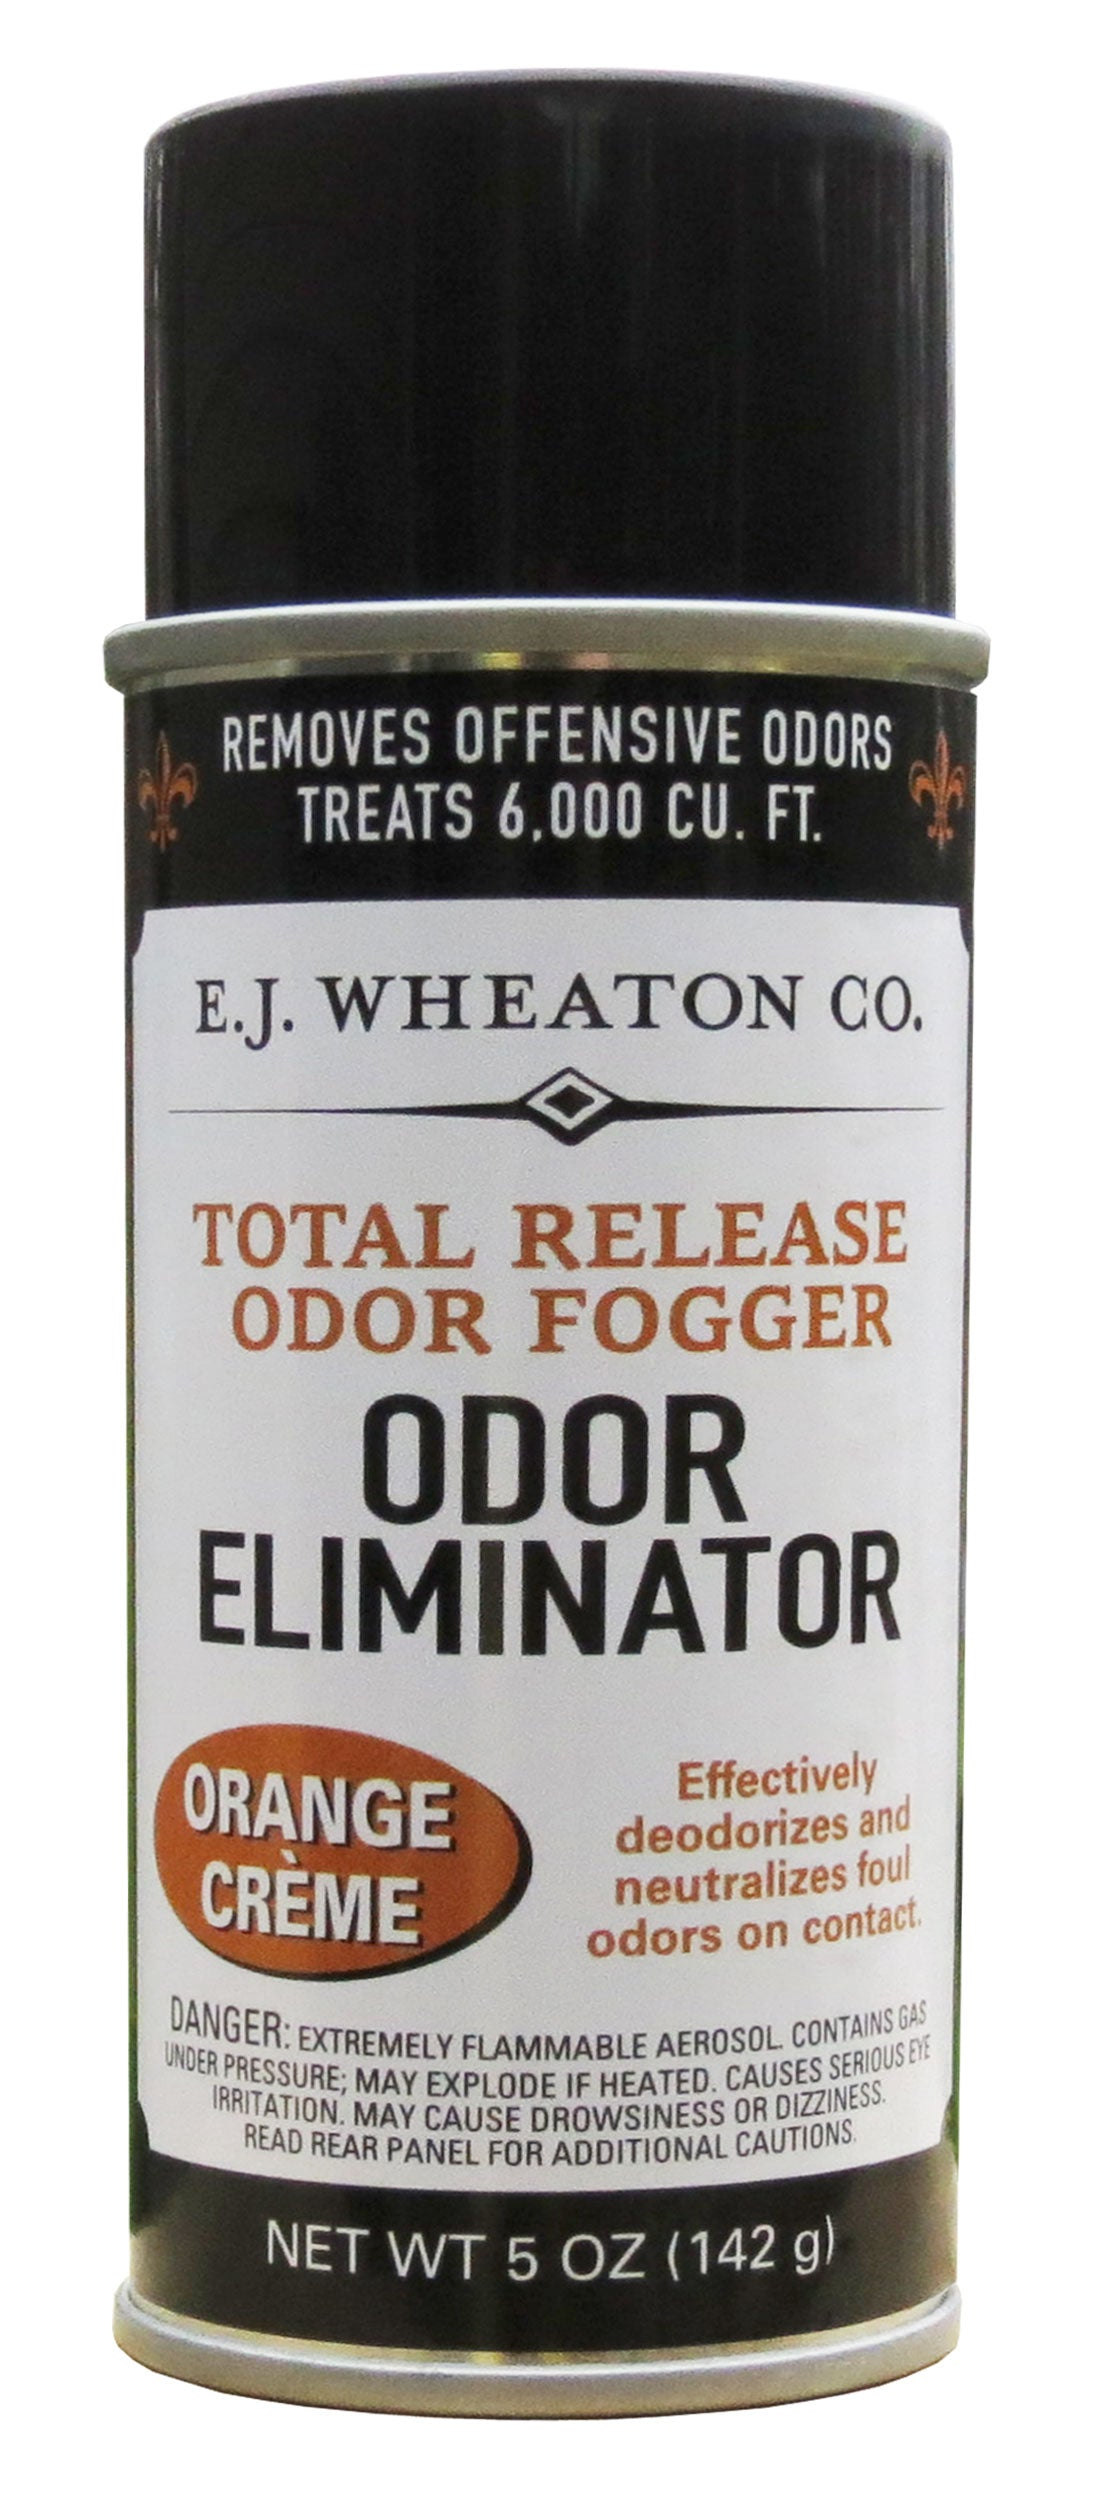 Total Release Odor Fogger, Odor Eliminator, Orange Creme (3 Pack)